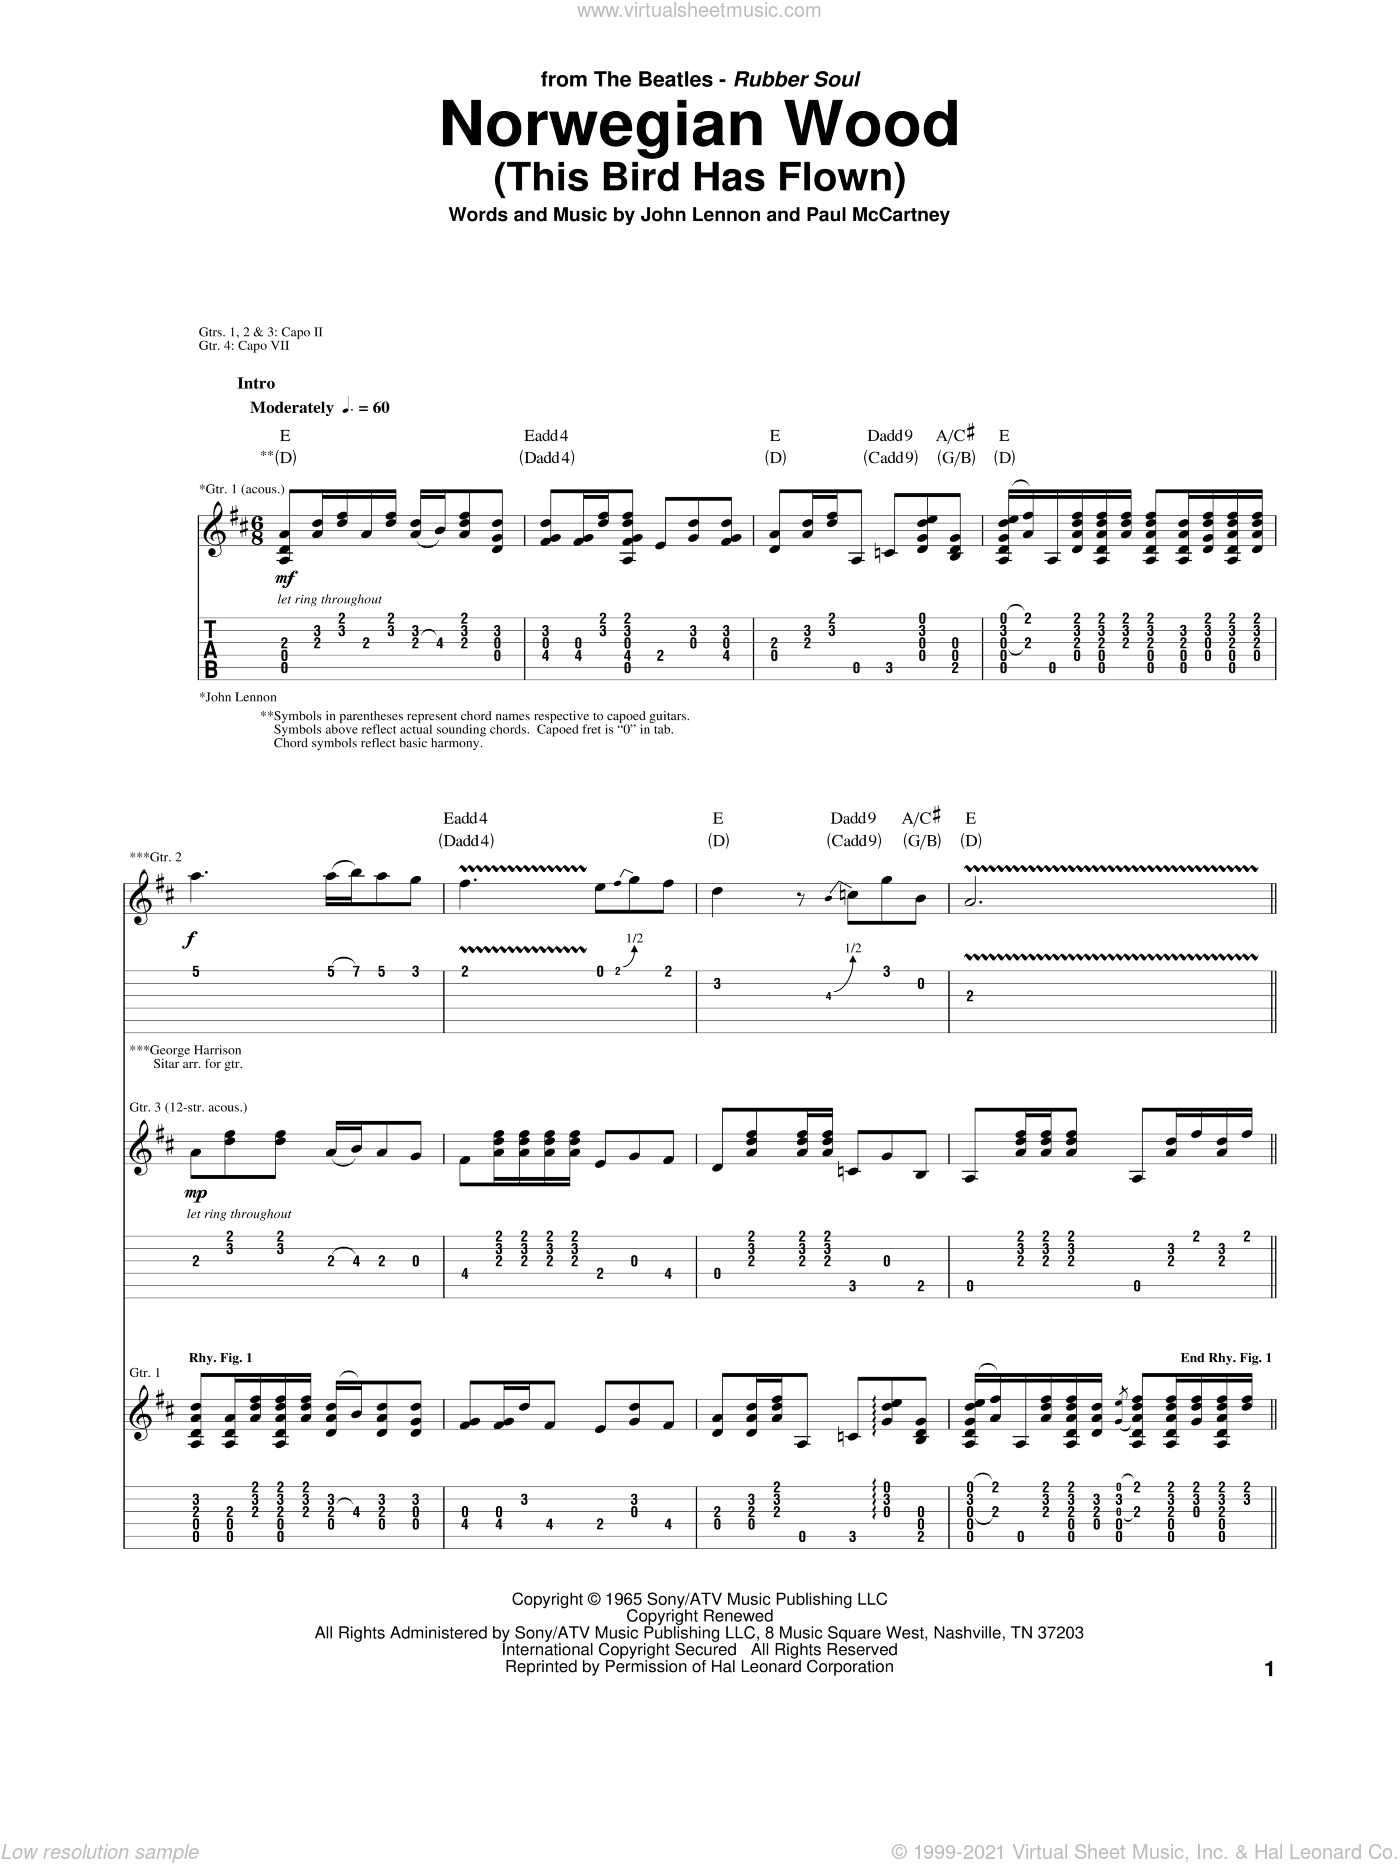 Norwegian Wood (This Bird Has Flown) sheet music for guitar (tablature) by The Beatles, John Lennon and Paul McCartney. Score Image Preview.